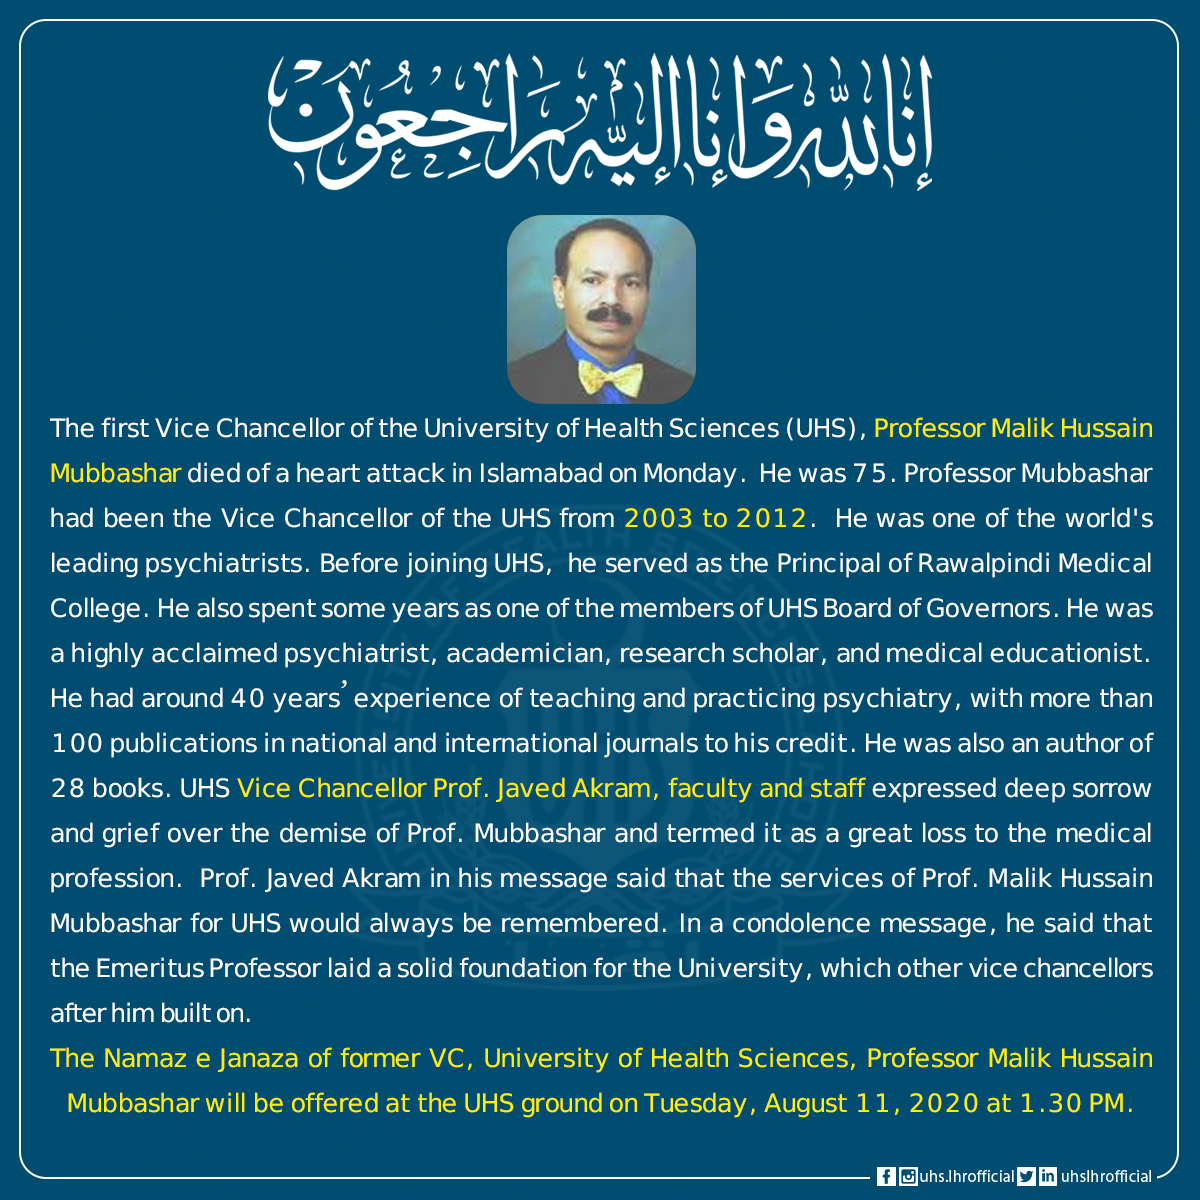 The Namaz e Janaza of former vice chancellor, University of Health Sciences, Professor Malik Hussain Mubbashar will be offered at the UHS ground on Tuesday, August 11, 2020 at 1.30 PM.